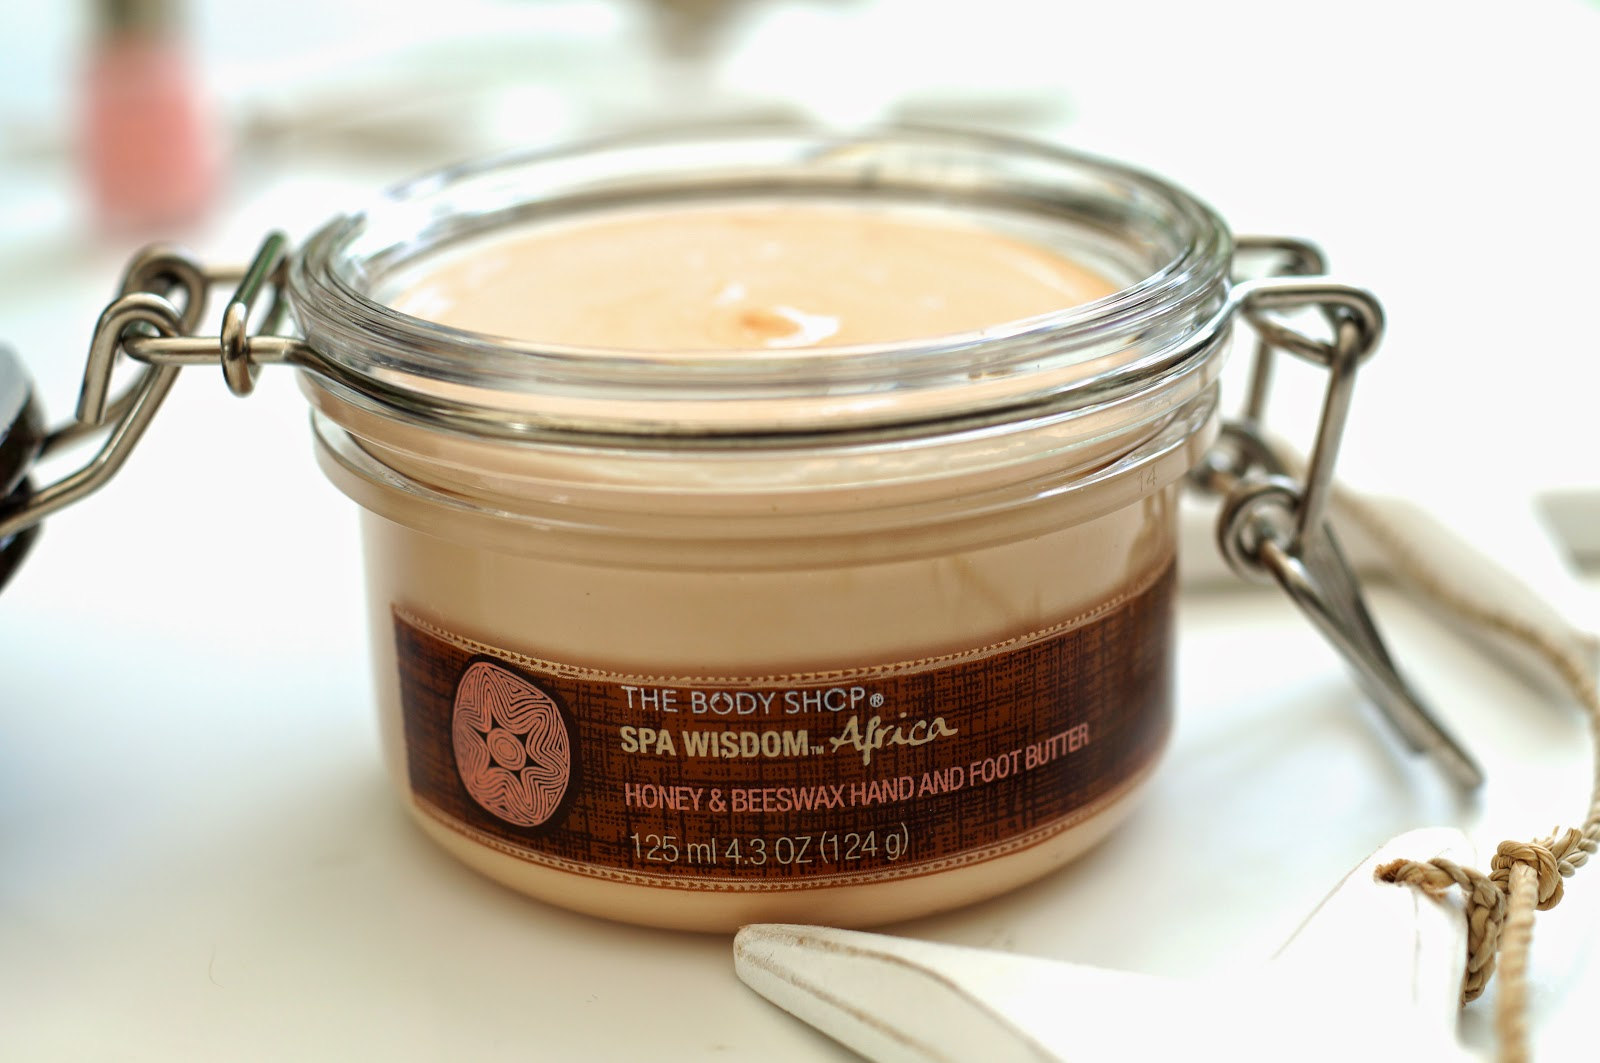 Honey & Beeswax Hand and Foot Butter The Body Shop